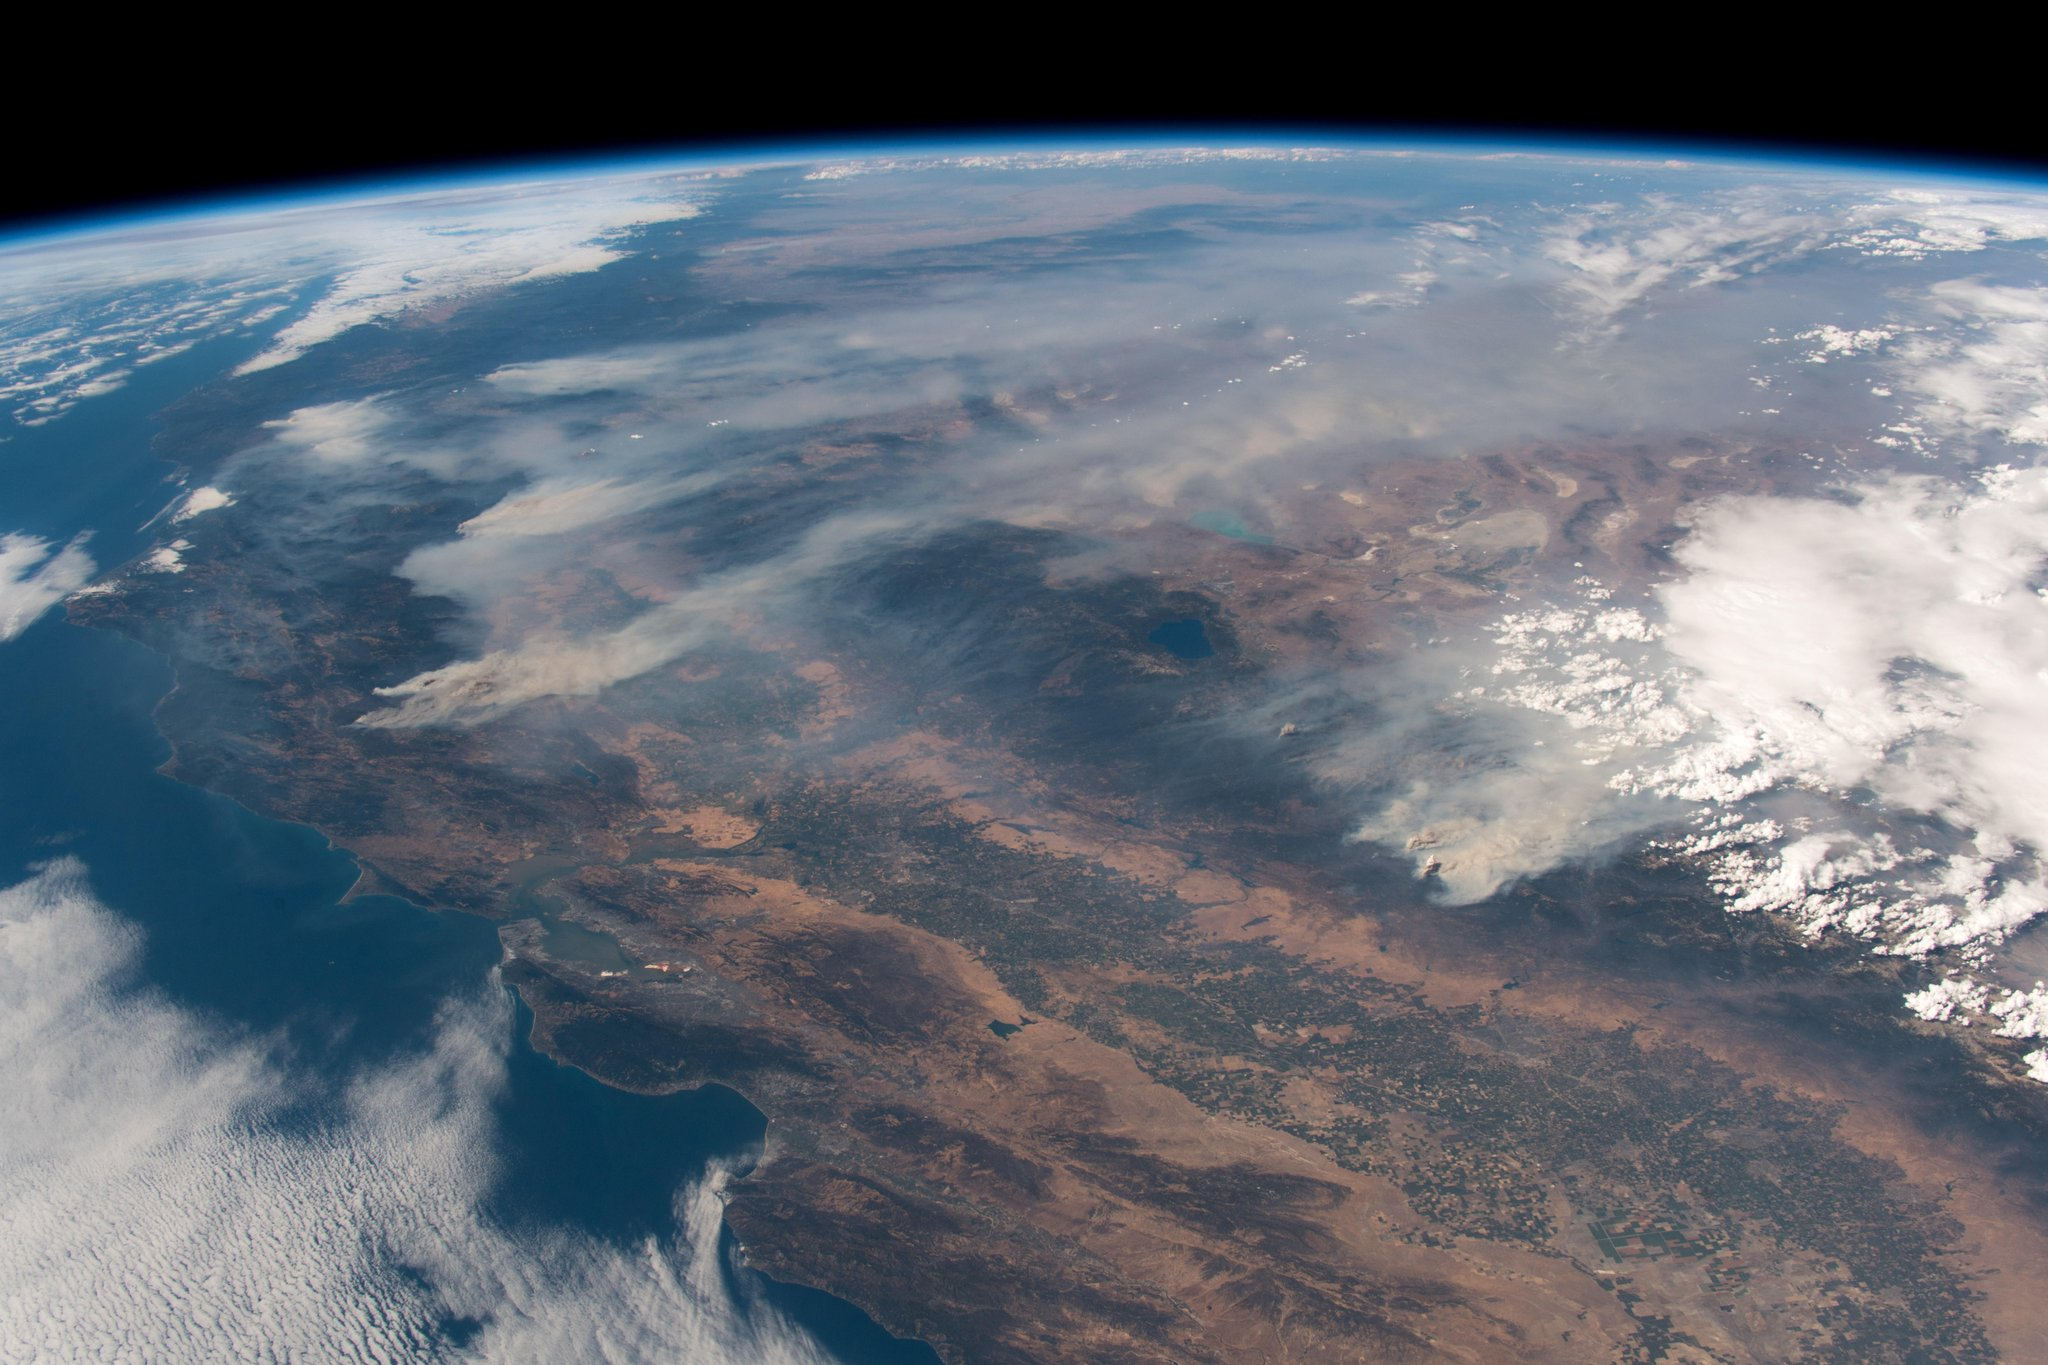 California burning. These fires are frightening to watch, even from space. Here's a shout-out from space to all firefighters on this planet, my former colleagues. Stay safe my friends! (Photo & Caption: Alexander Gerst / NASA)